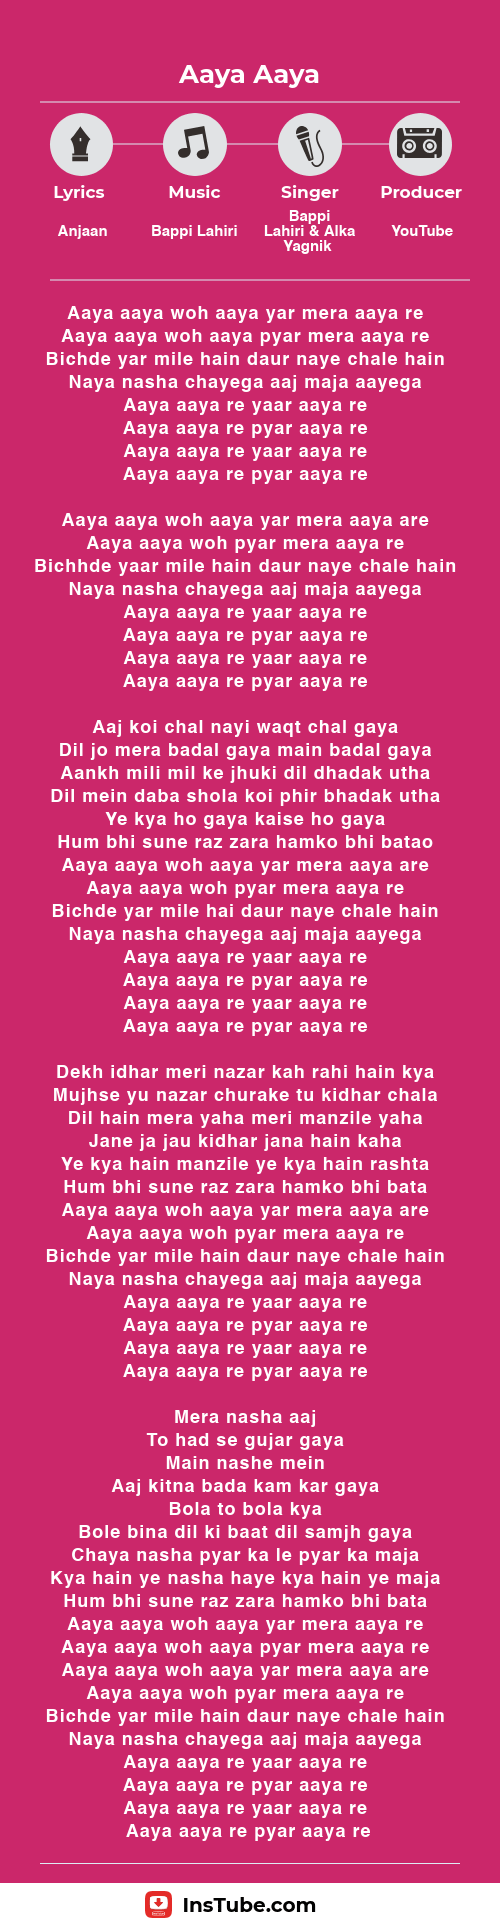 Hawa Hawa lyrics Aaya Aaya Woh Yaar in Aag Ka Gola movie